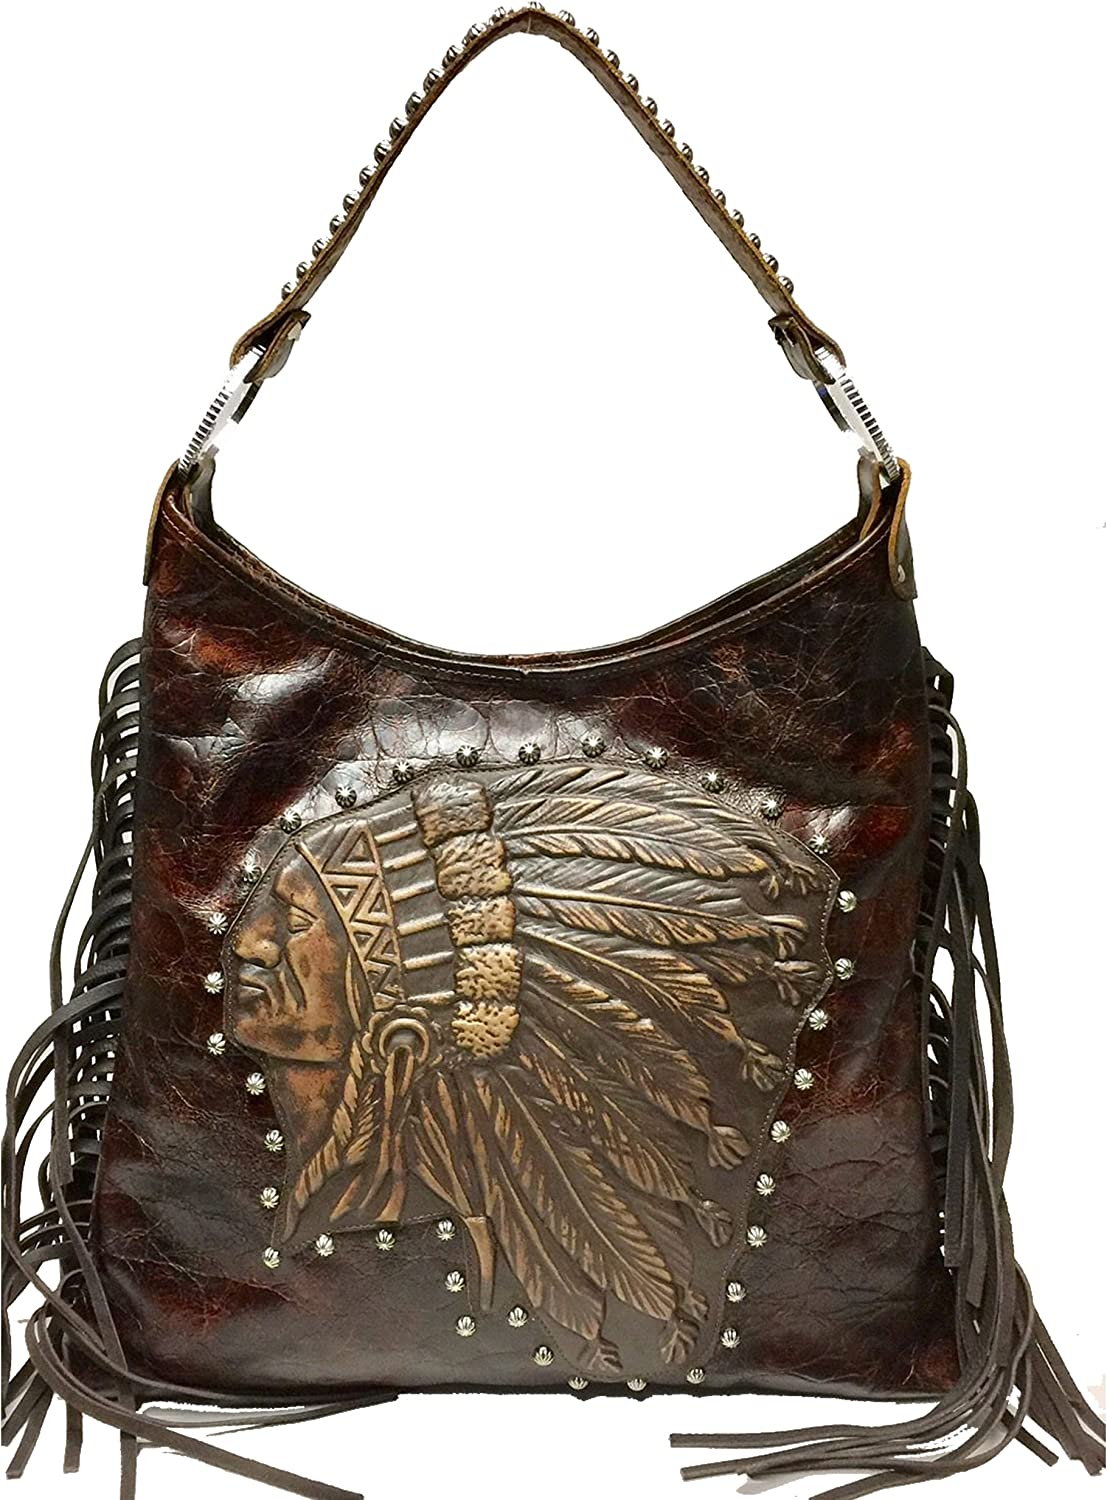 Raviani Brown Crocodile Embossed /& Brindle Hair on Hide Genuine Leather Shoulder Handbag